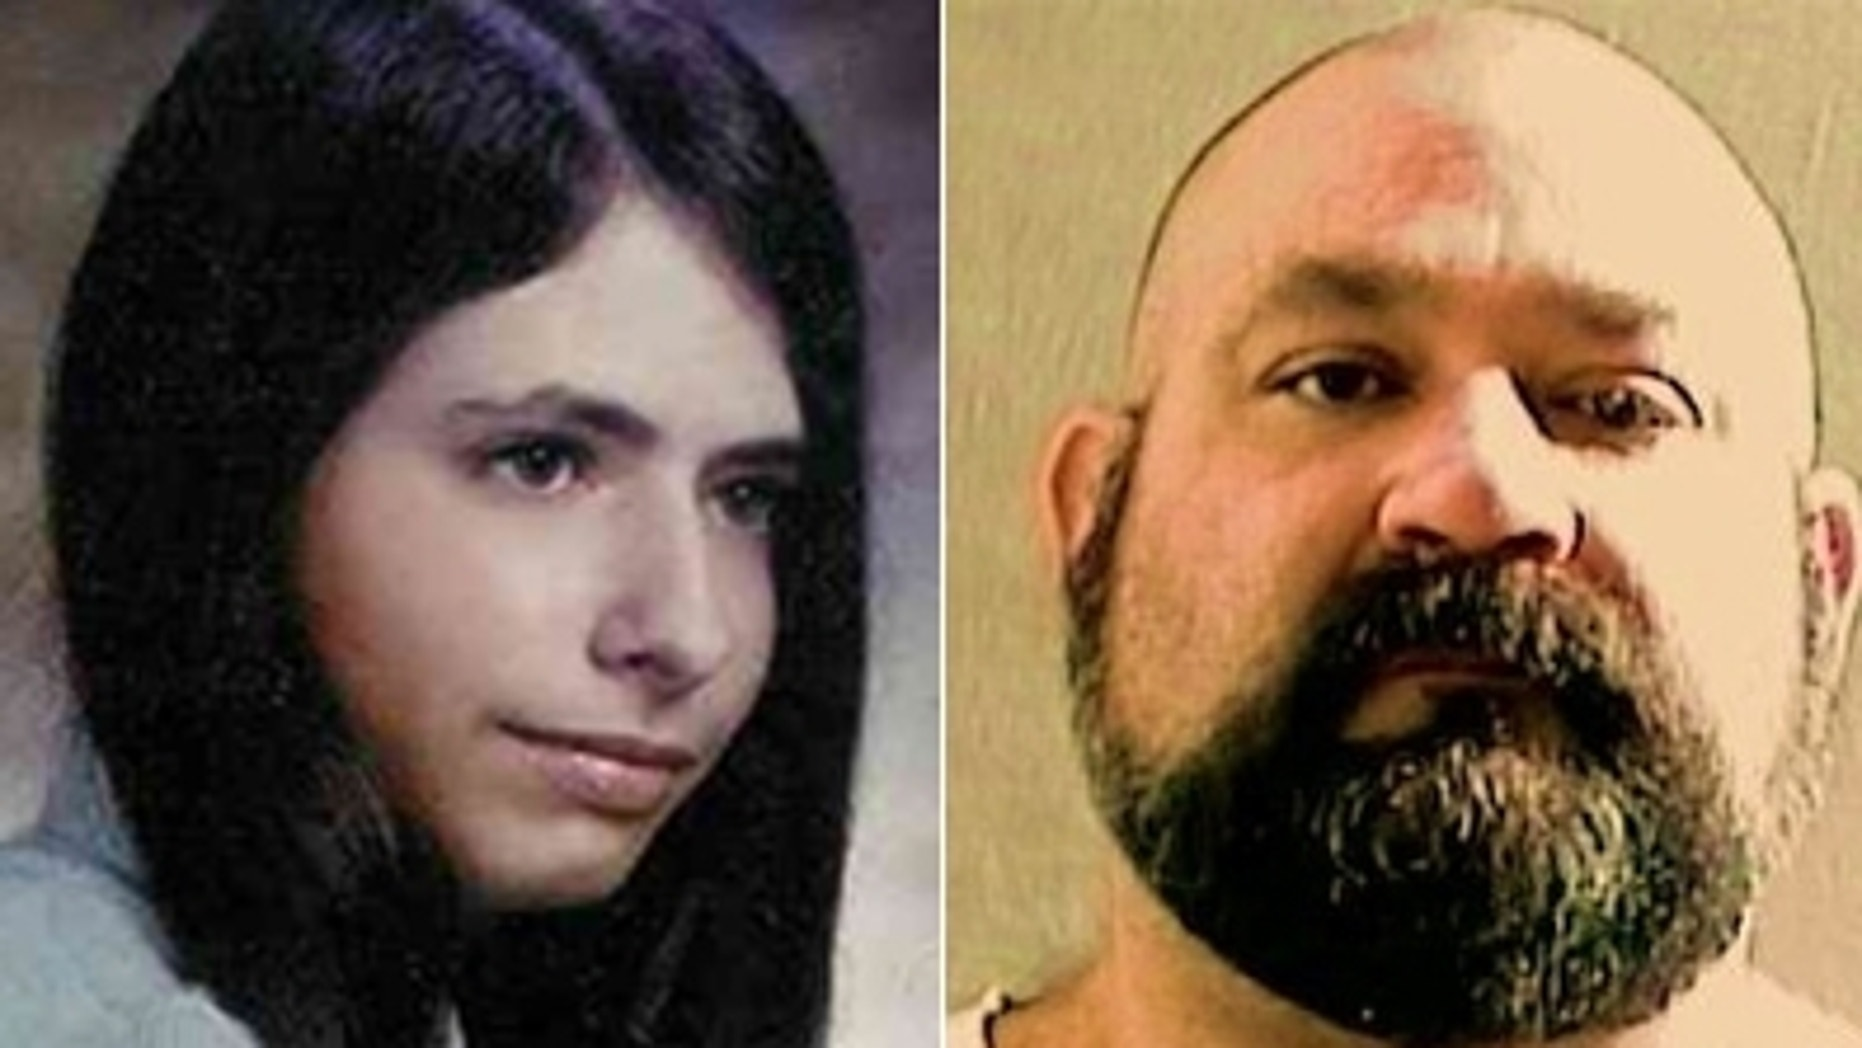 Kim Montelaro, pictured in her Immaculate Heart Academy high school yearbook photo, was raped and murdered in Bergen County, N.J., in 1976. Her killer, Christopher Righetti, right, is serving a life sentence, but will make his sixth appearance before a state parole board next month.